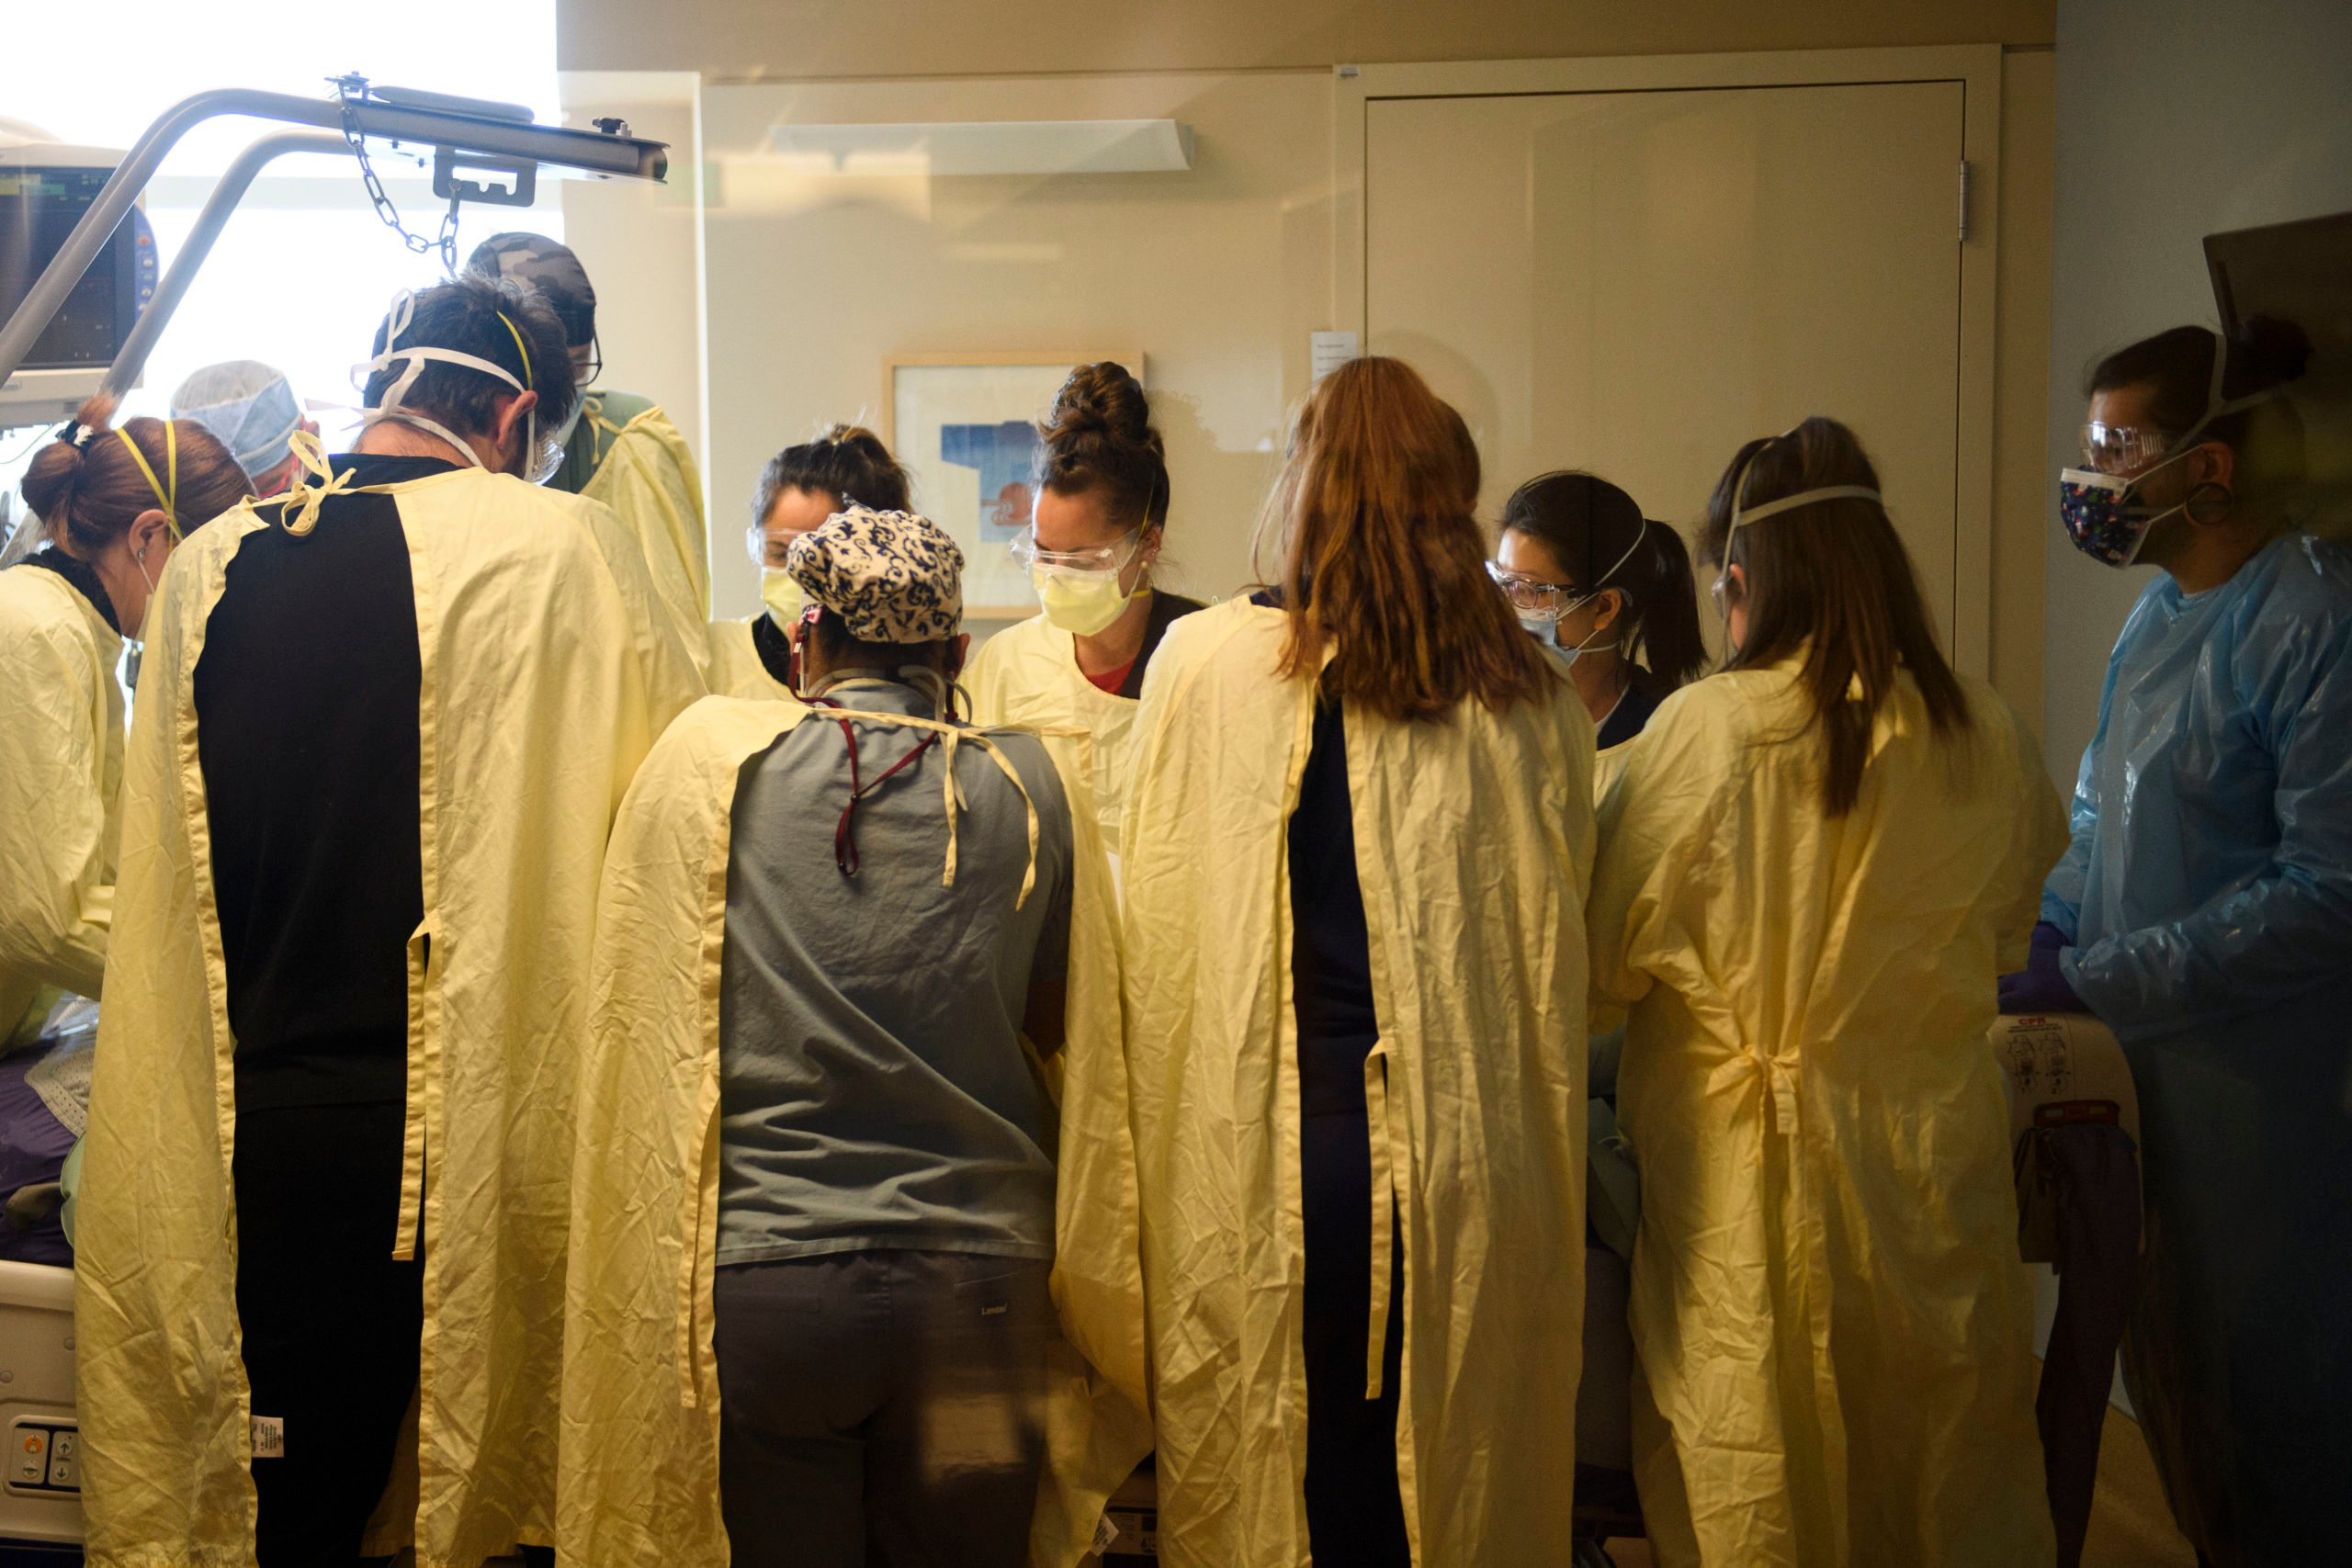 """A team of health care workers including physicians, nurses, certified nursing assistants, and respiratory specialists wear personal protective equipment (PPE) while turning a patient from their stomach onto their back in the Covid-19 intensive care unit (ICU) at Renown Regional Medical Center on December 16, 2020 in Reno, Nevada. - Renown Health converted two floors of a parking garage into an alternative care site for Covid-19 patients to increase hospital capacity amid a surge in cases, allowing other facilities to be used for patients in more serious condition. The site included the addition of flooring, electrical infrastructure, lighting, water, technology, sanitation, and ventilation. President Trump earlier this month retweeted a tweet that described Renown's structure as """"the fake Nevada parking garage hospital"""" due to a lack of patients in the picture taken before the facility opened. The site is for patients that have mild to moderate Covid-19 cases and do not require critical care, with 24 patients currently and 350 patient visits to date. (Photo by Patrick T. Fallon / AFP) (Photo by PATRICK T. FALLON/AFP via Getty Images)"""